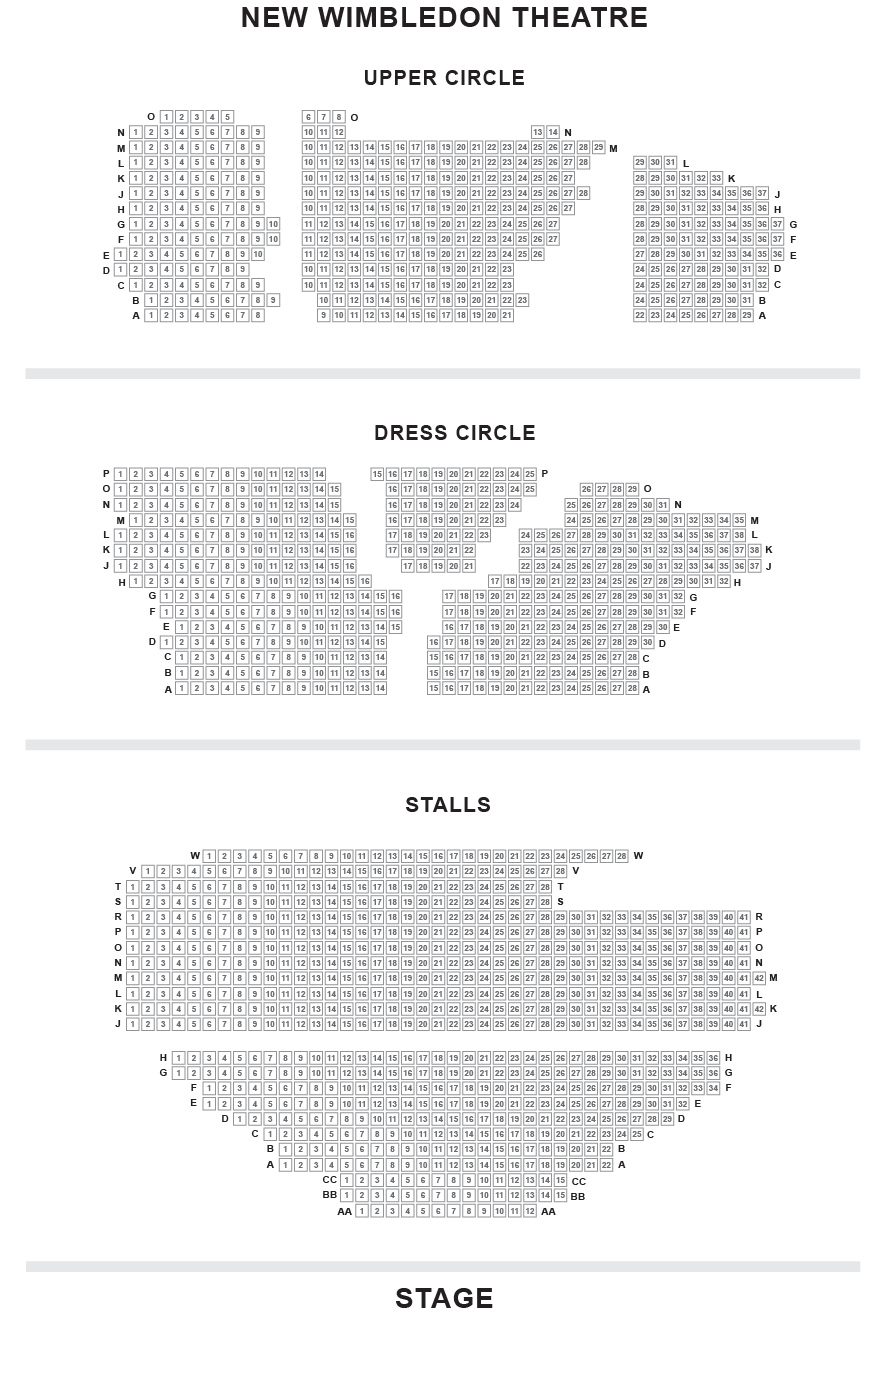 New Wimbledon Theatre Seating Plan